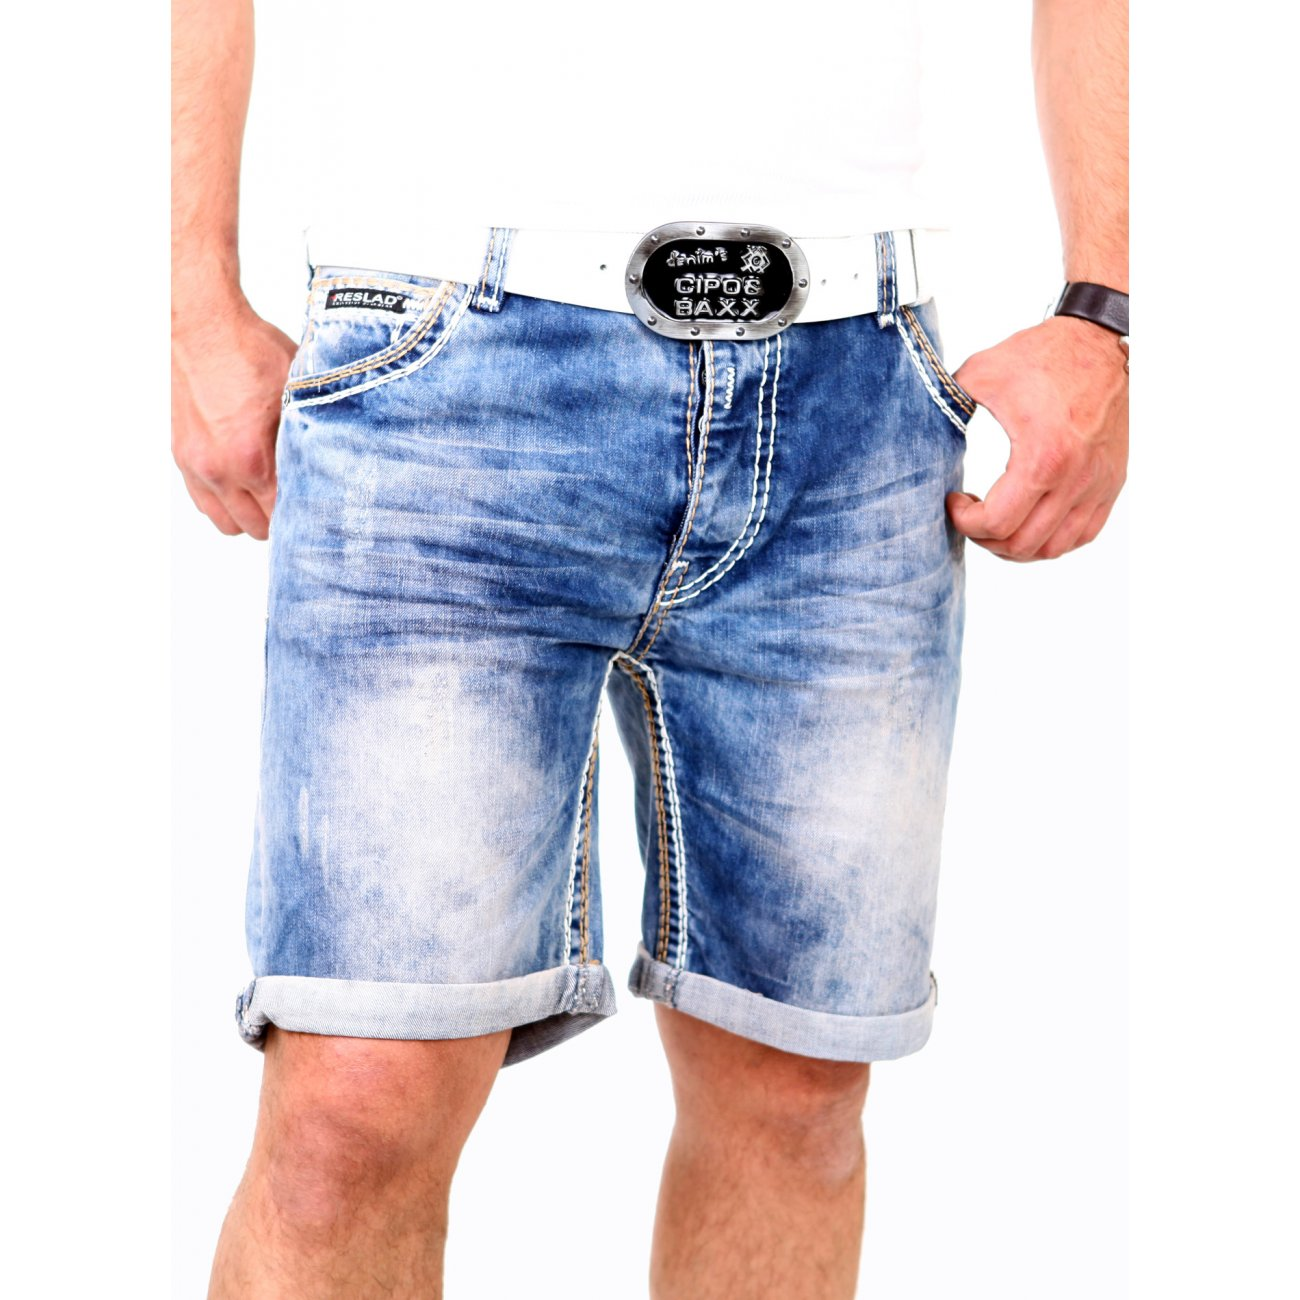 jeans shorts mit dicken n hten reslad jeans bermuda. Black Bedroom Furniture Sets. Home Design Ideas